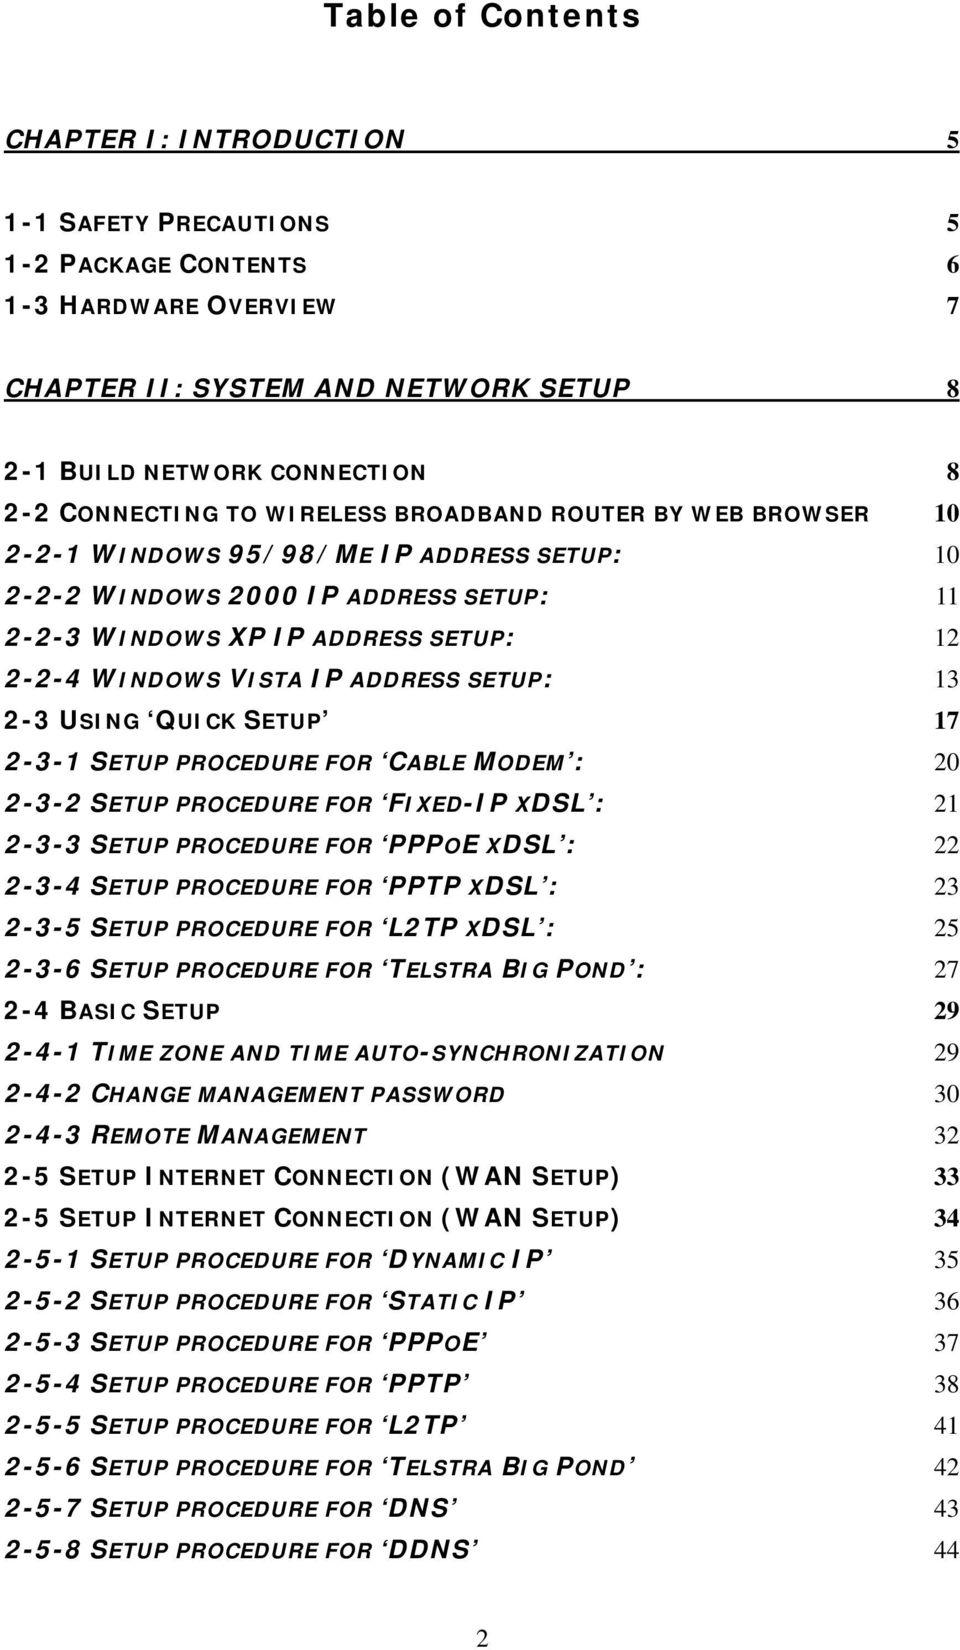 IP ADDRESS SETUP: 13 2-3 USING QUICK SETUP 17 2-3-1 SETUP PROCEDURE FOR CABLE MODEM : 20 2-3-2 SETUP PROCEDURE FOR FIXED-IP XDSL : 21 2-3-3 SETUP PROCEDURE FOR PPPOE XDSL : 22 2-3-4 SETUP PROCEDURE